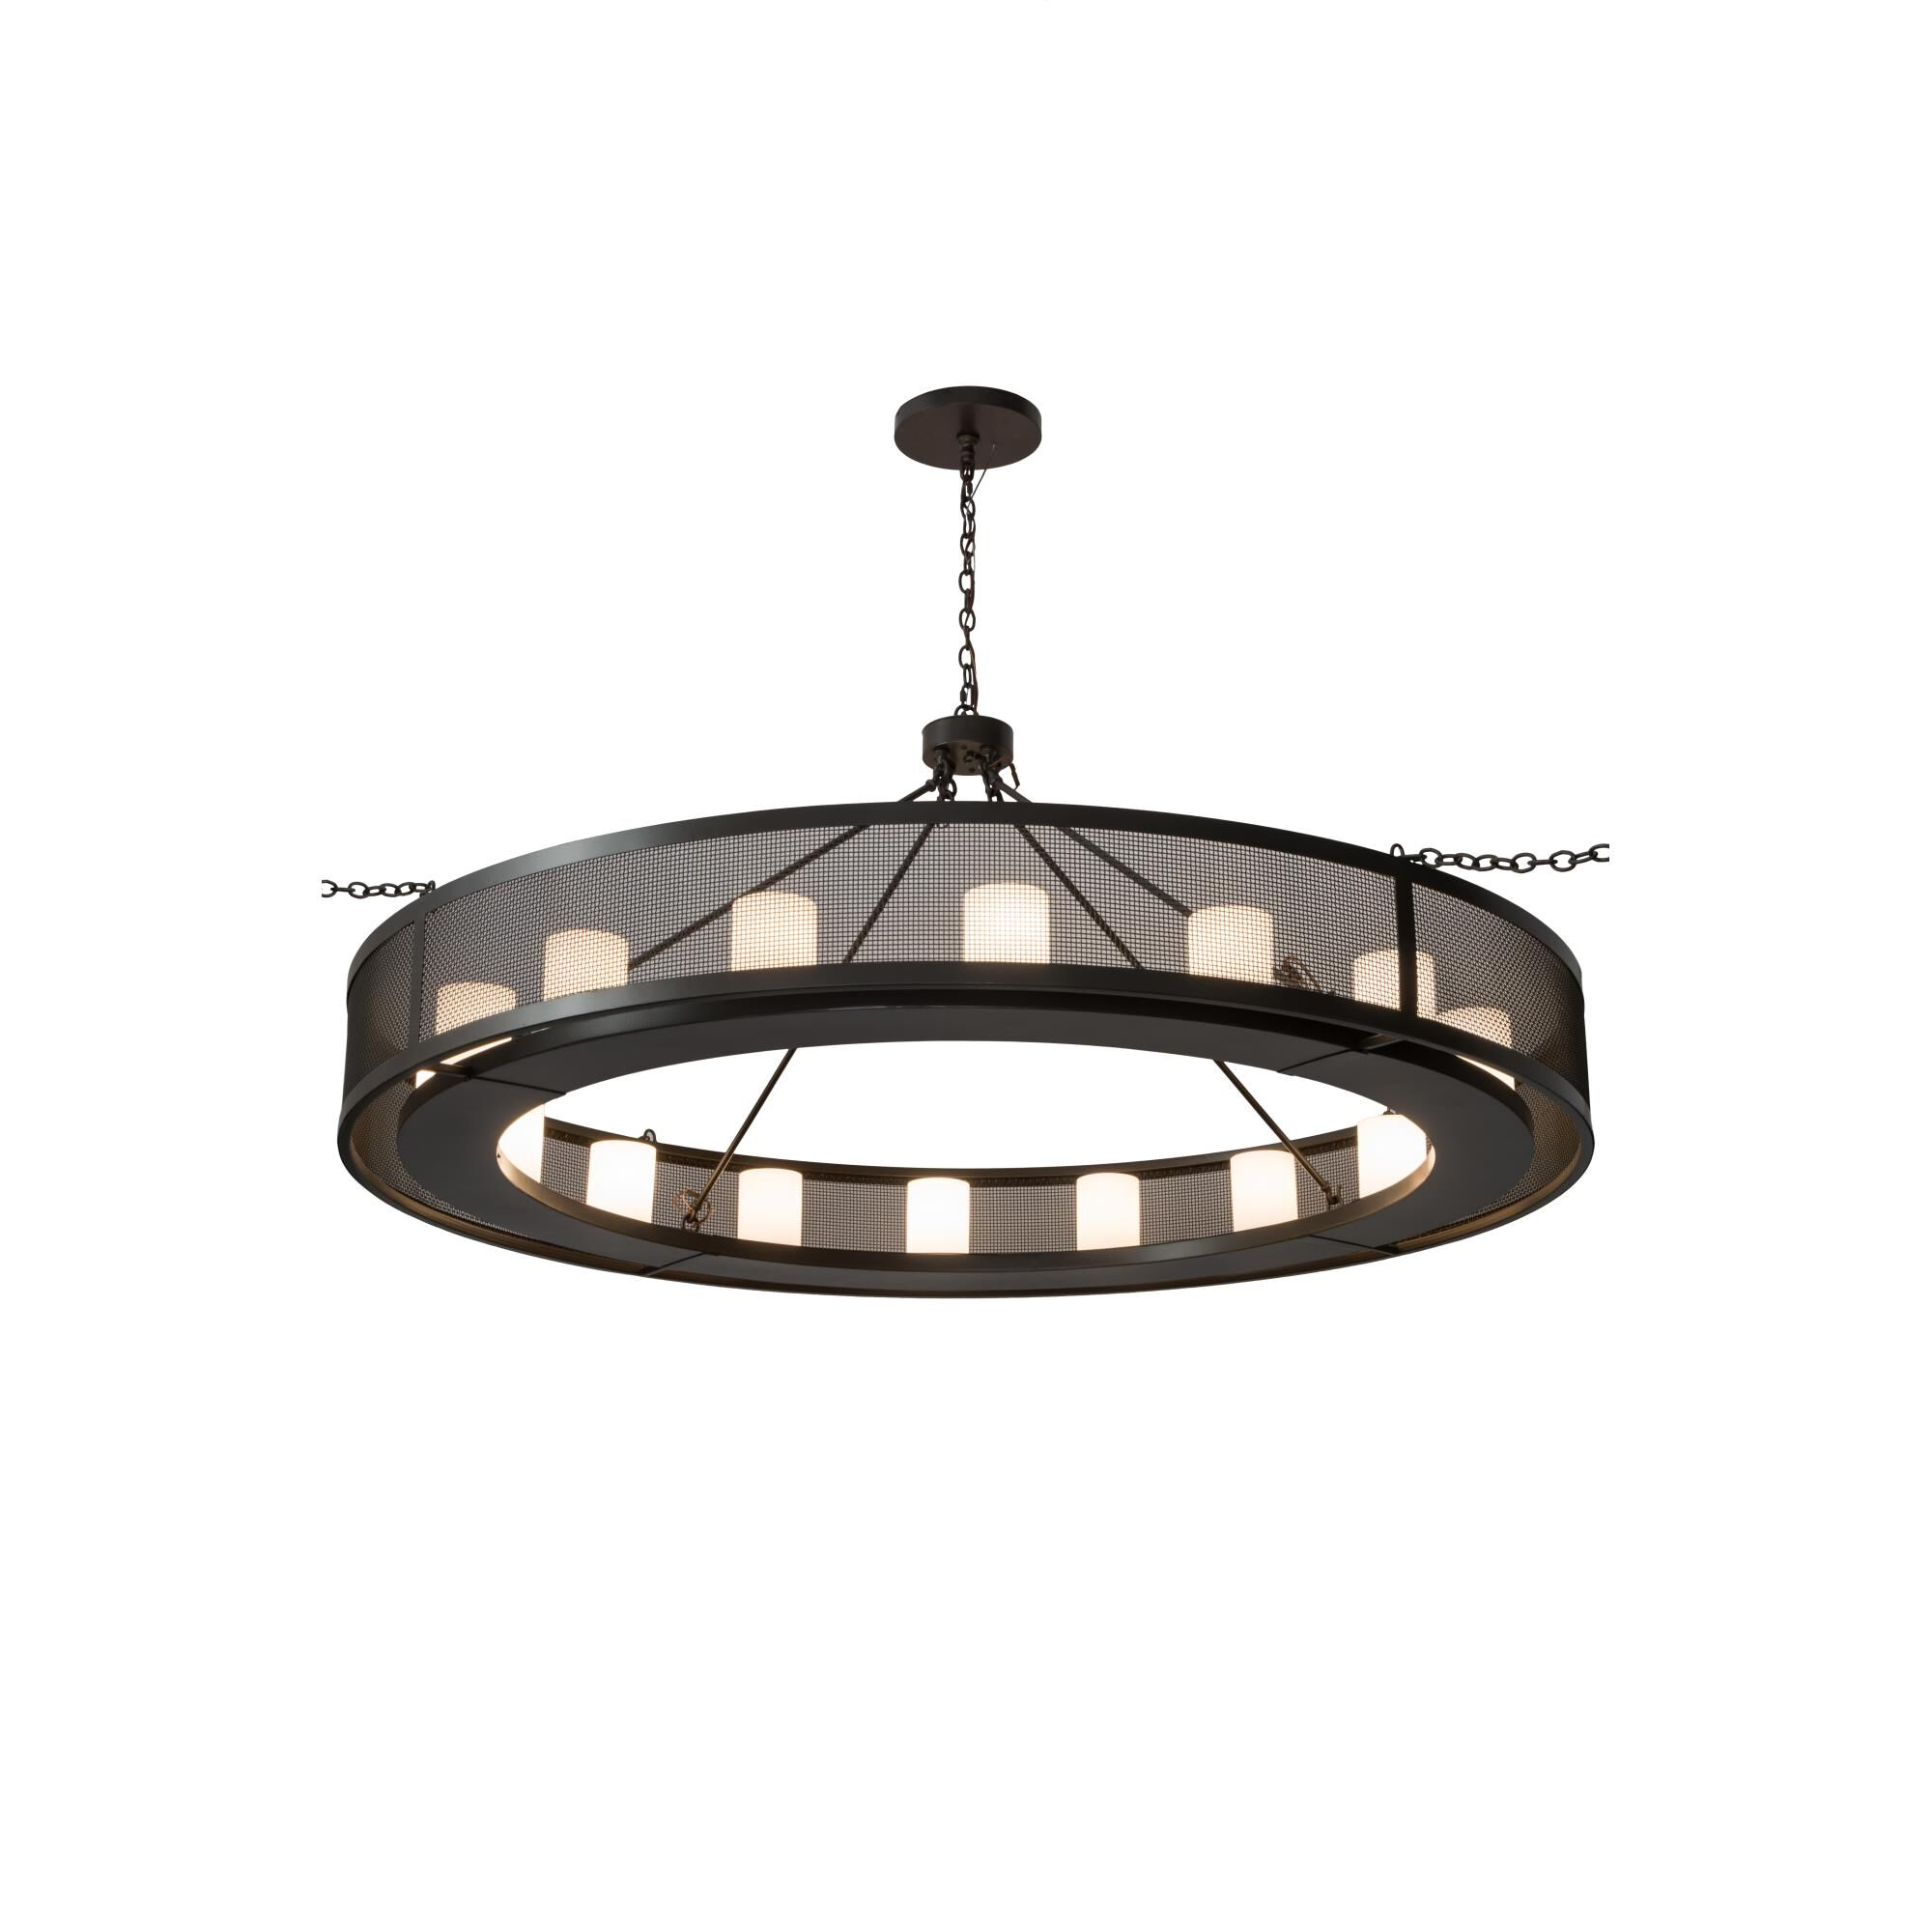 2nd Avenue Design Loxley 78 Inch 16 Light LED Chandelier Loxley 48259 879SWAY